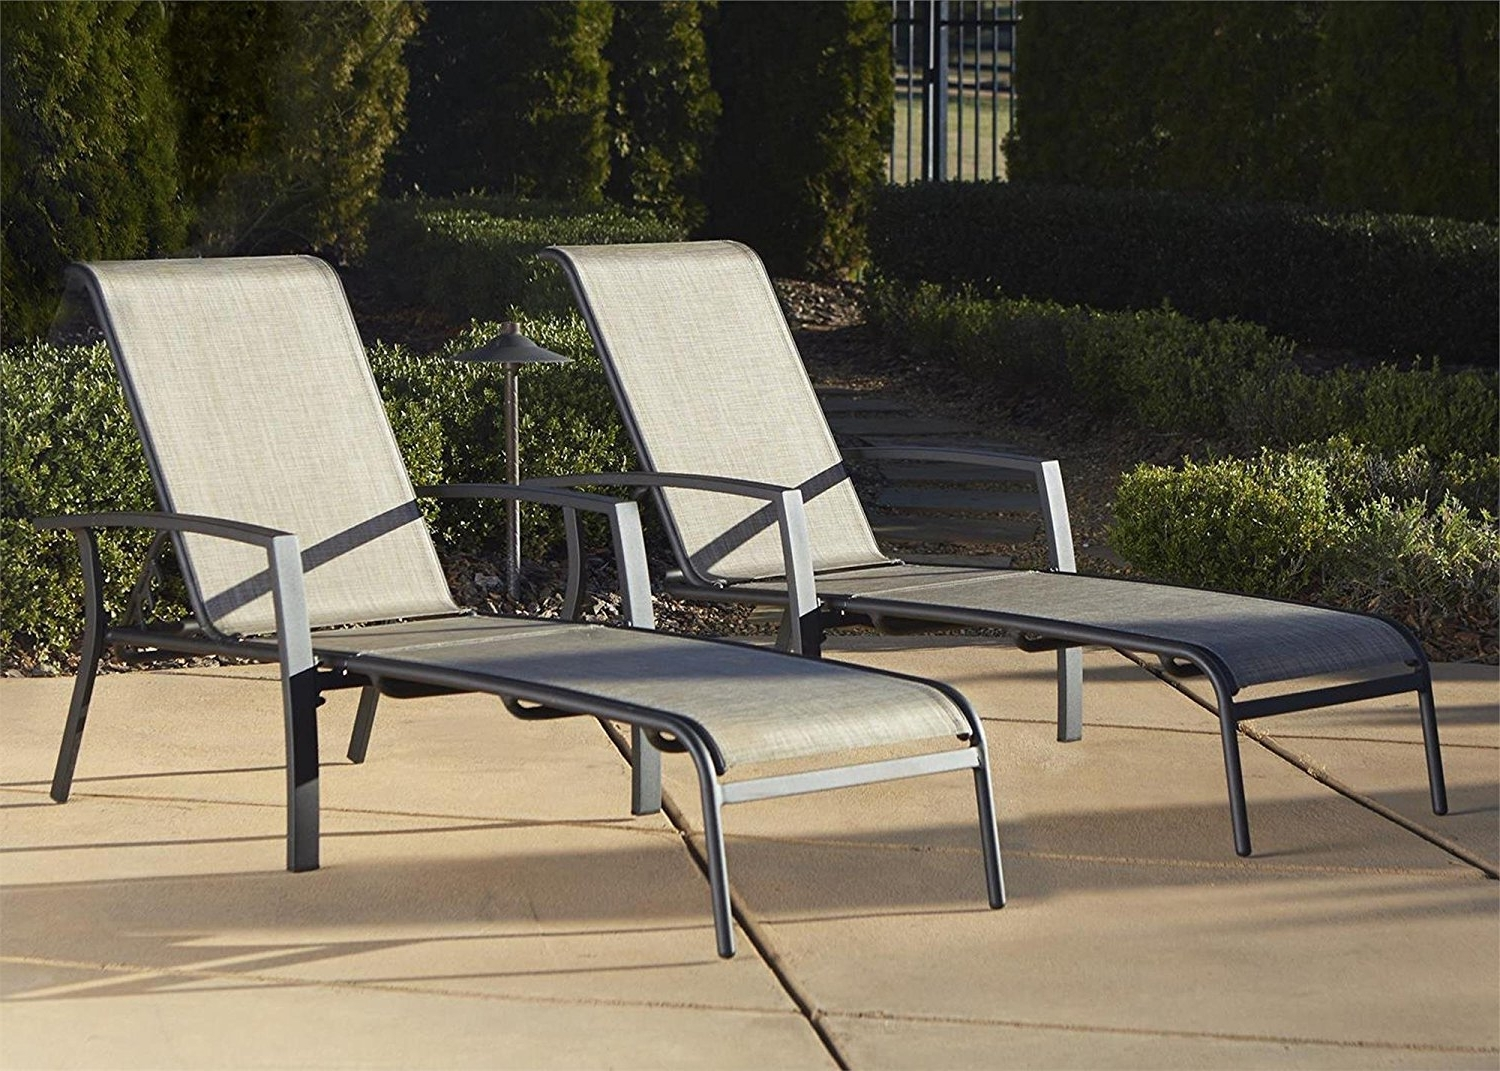 Outdoor Cast Aluminum Chaise Lounge Chairs For Newest Amazon: Cosco Outdoor Adjustable Aluminum Chaise Lounge Chair (View 8 of 15)